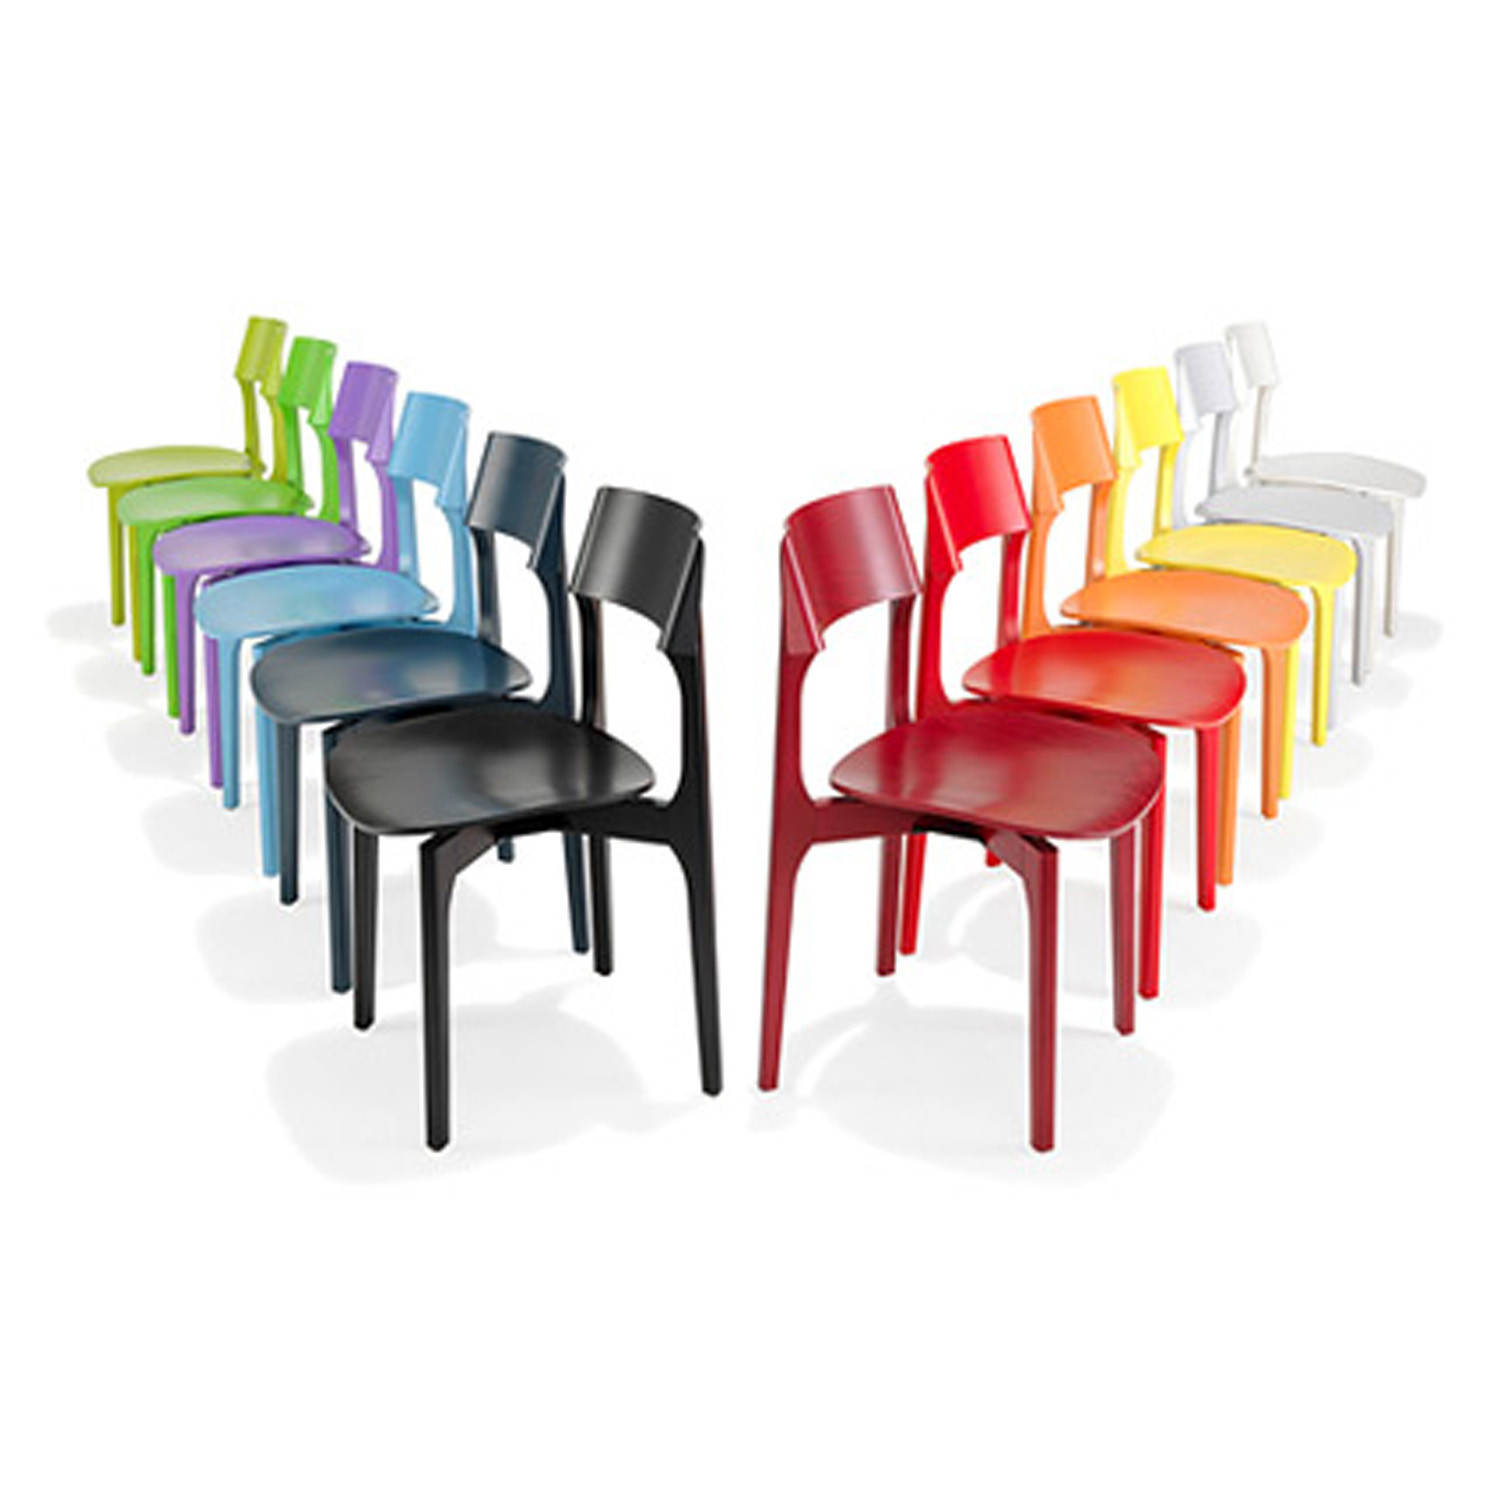 1010 Bina Chairs is available in a wide range of colours